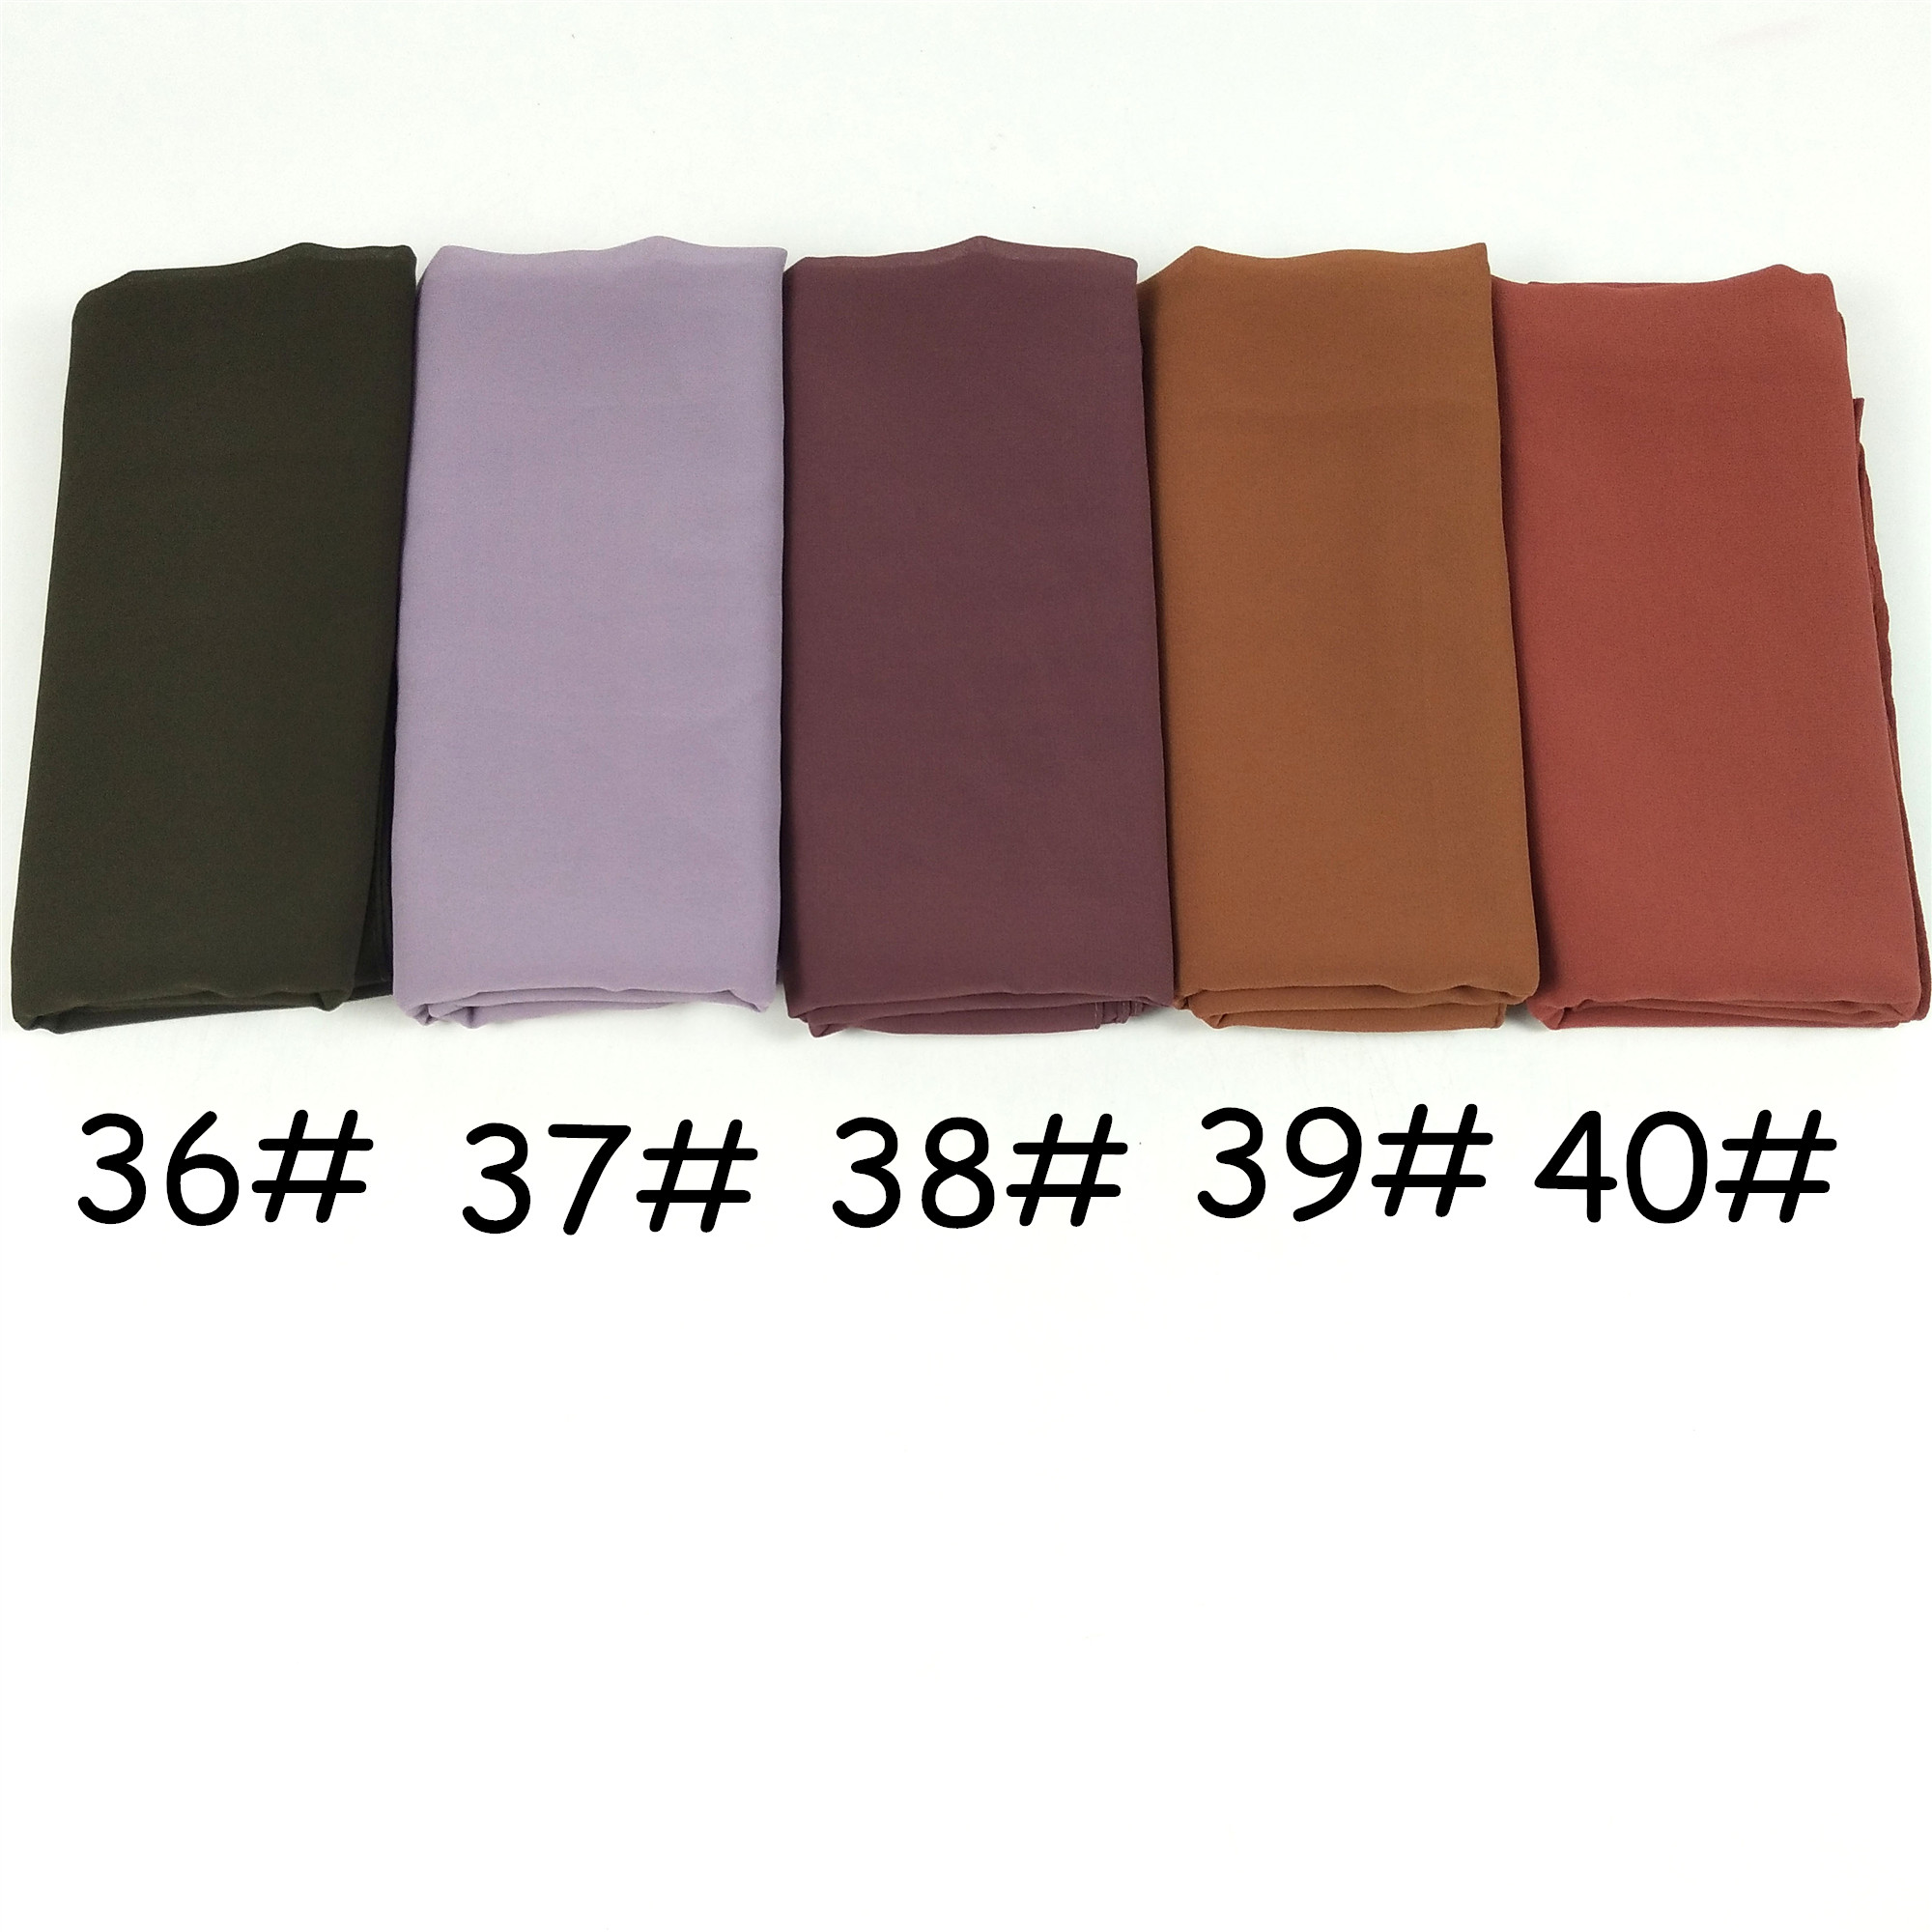 Image 5 - k9 1  Big size women High quality bubble chiffon printe solid color shawls hijab winter muslim  scarves/scarf 180*85cm-in Women's Scarves from Apparel Accessories